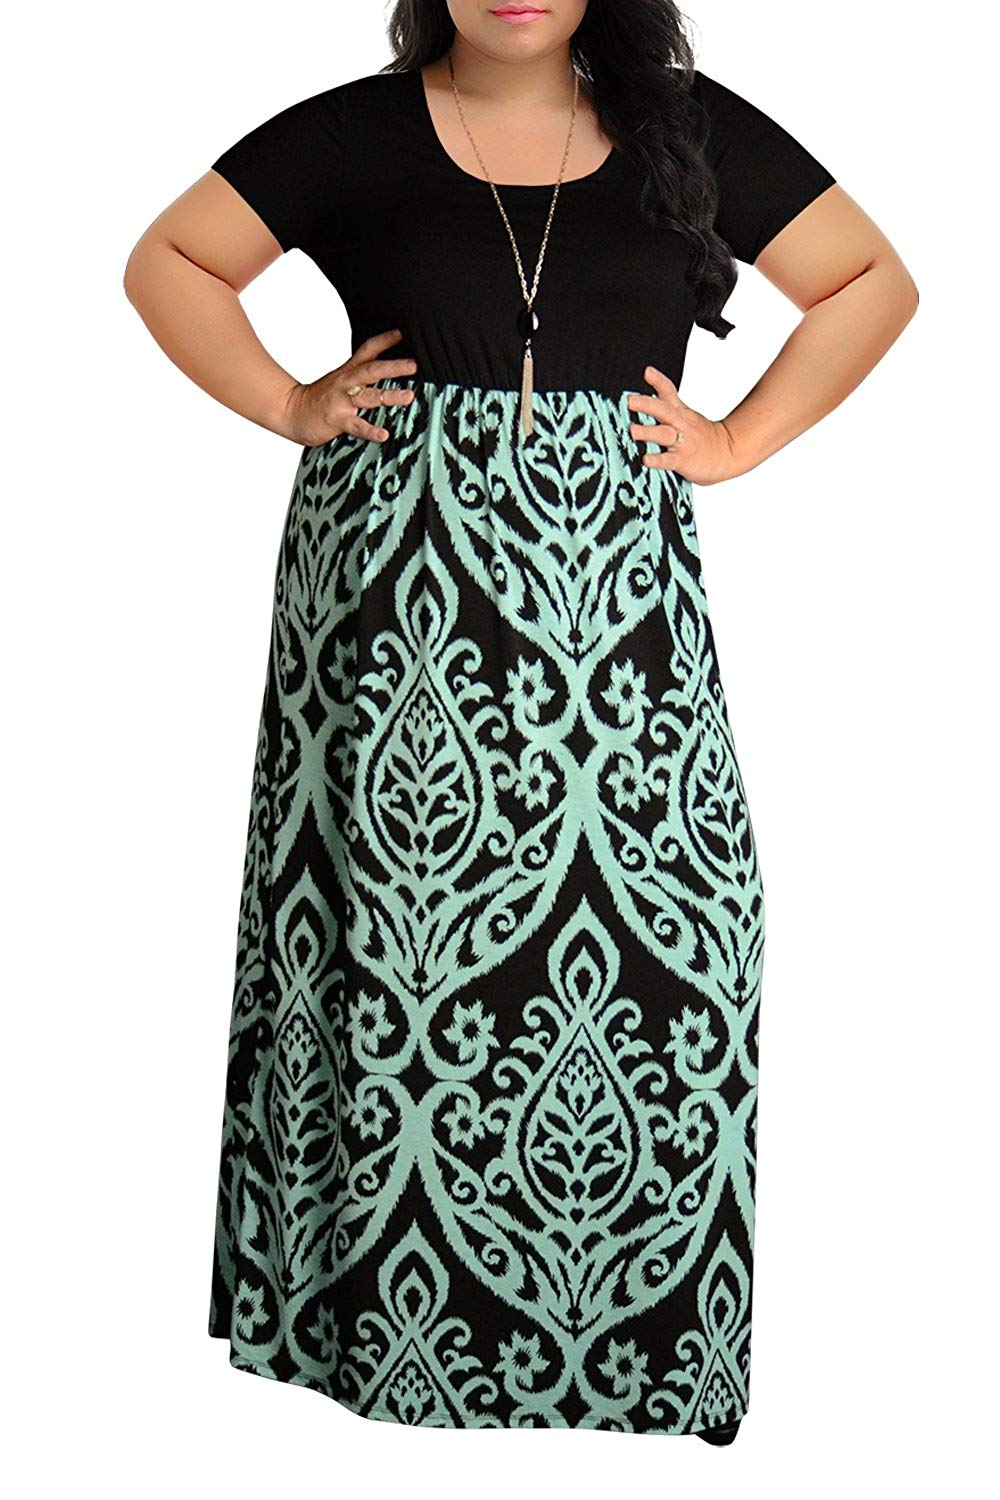 84b2cb4b47e Nemidor Women s Chevron Print Summer Short Sleeve Plus Size Maxi Dress